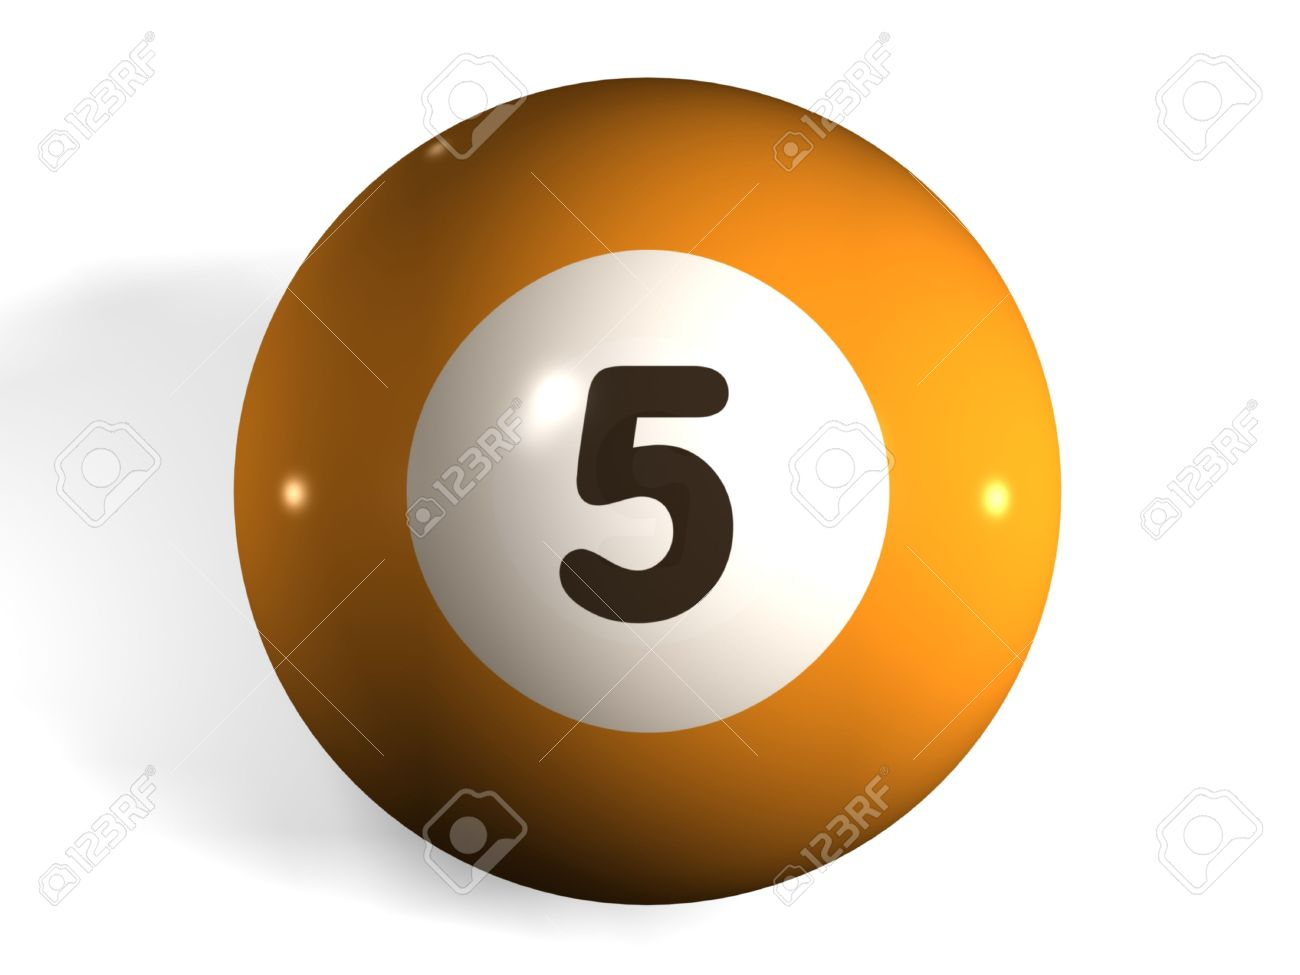 isolated 3d pool ball number 5 stock photo, picture and royalty